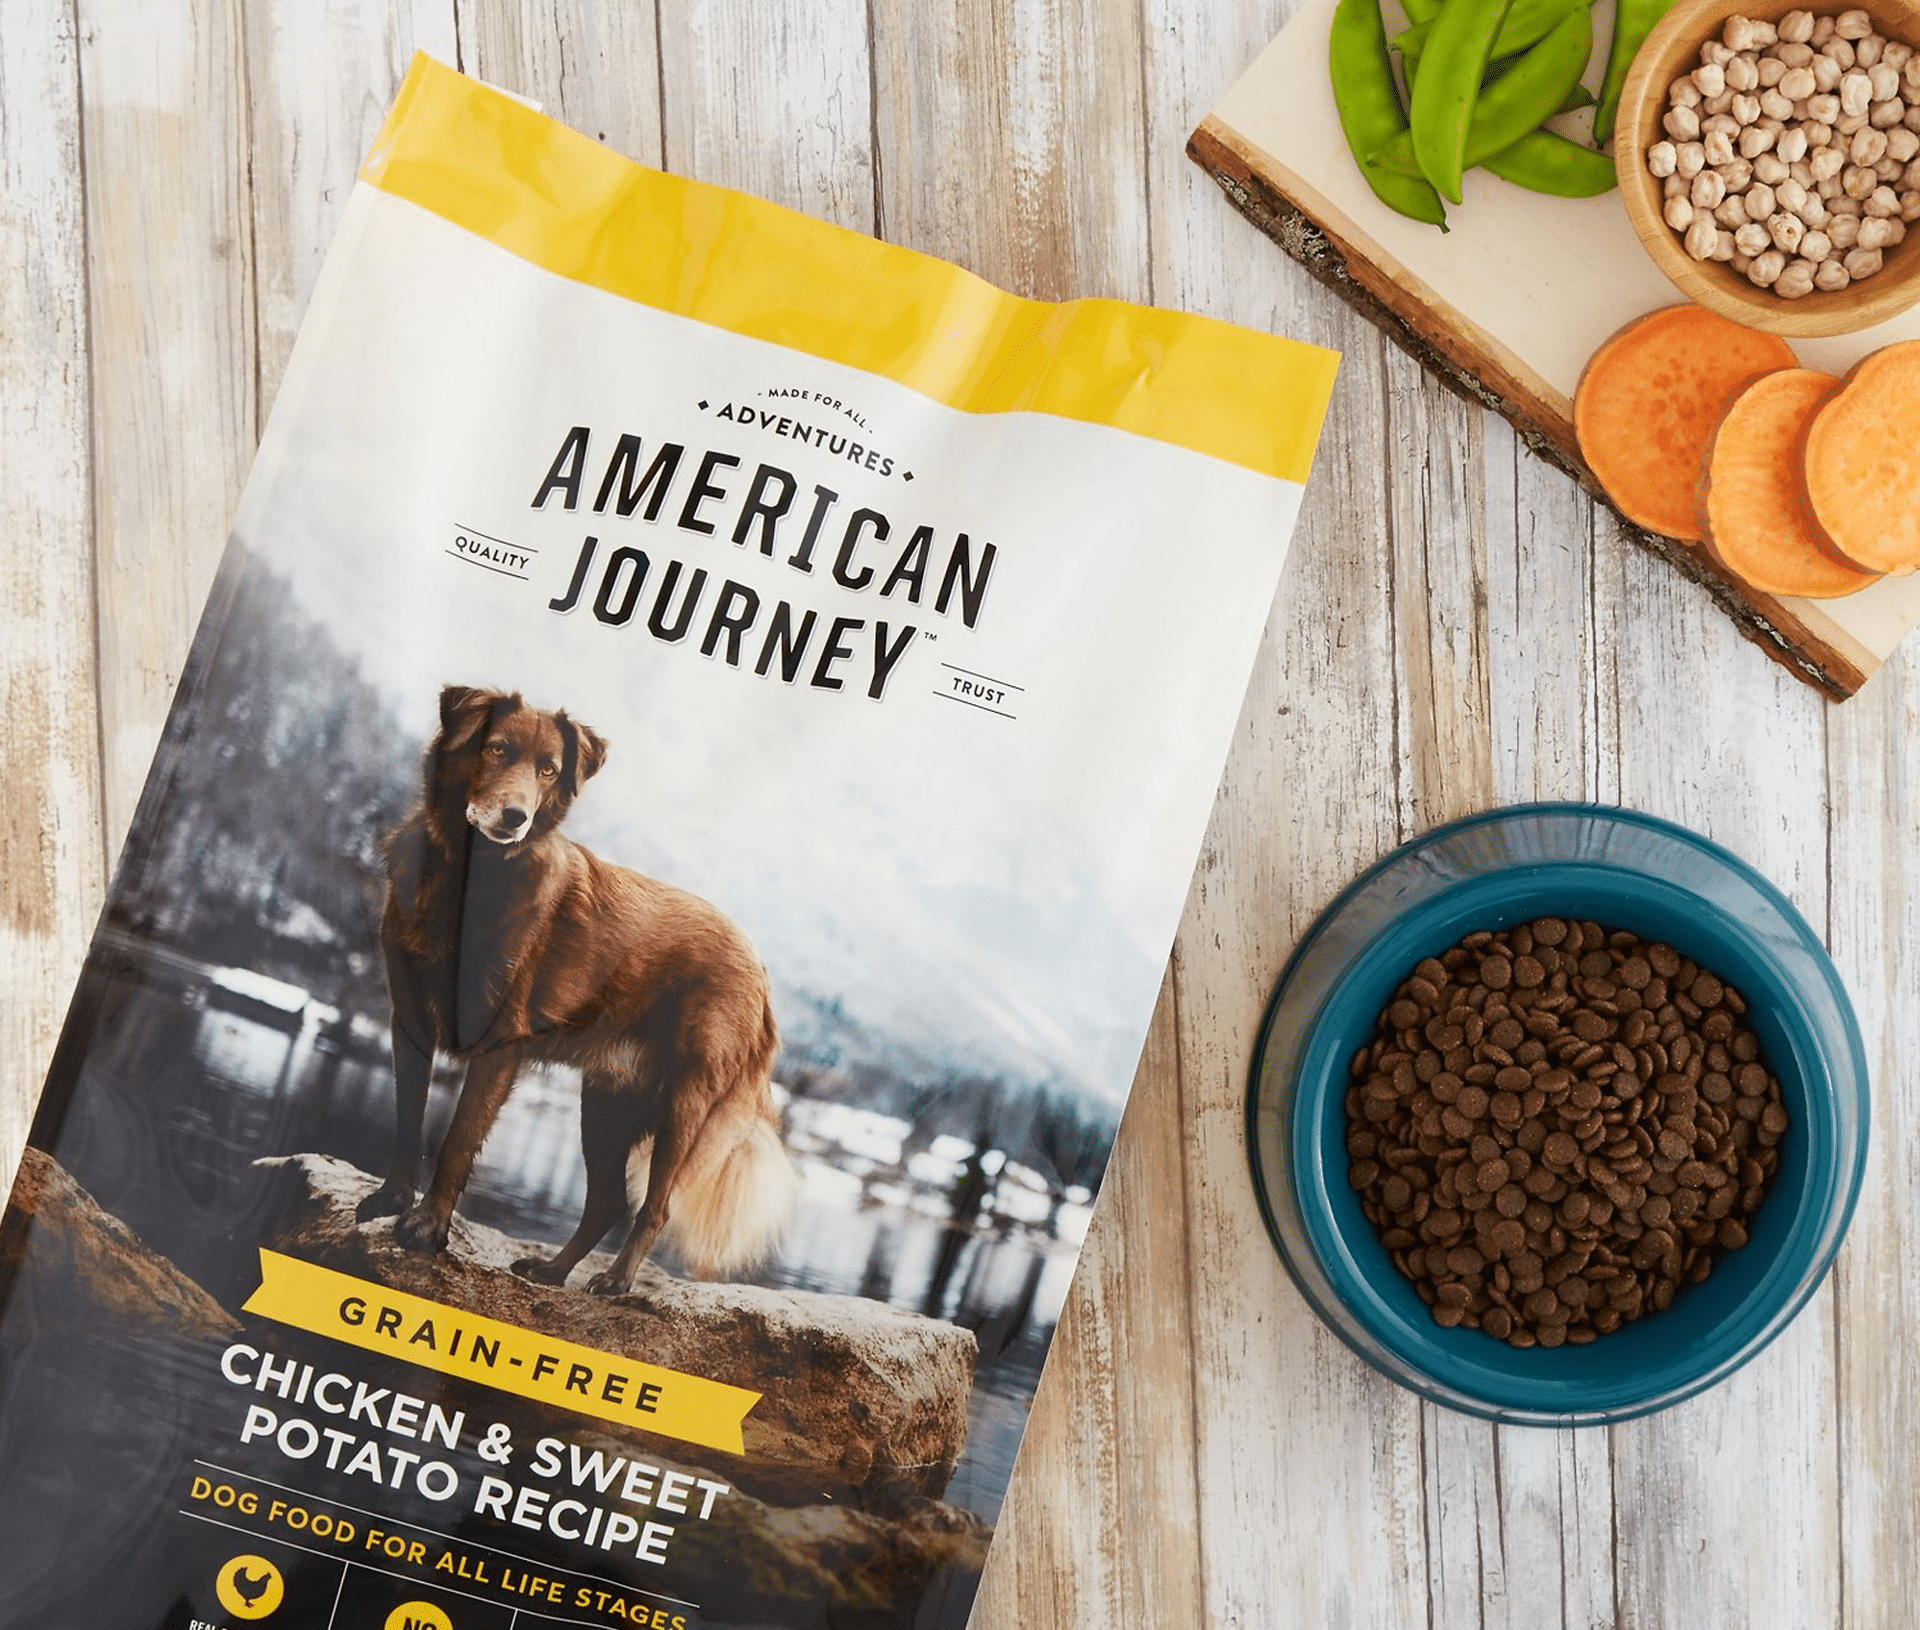 American Journey Chicken & Sweet Potato Recipe Grain-Free Dry Dog Food